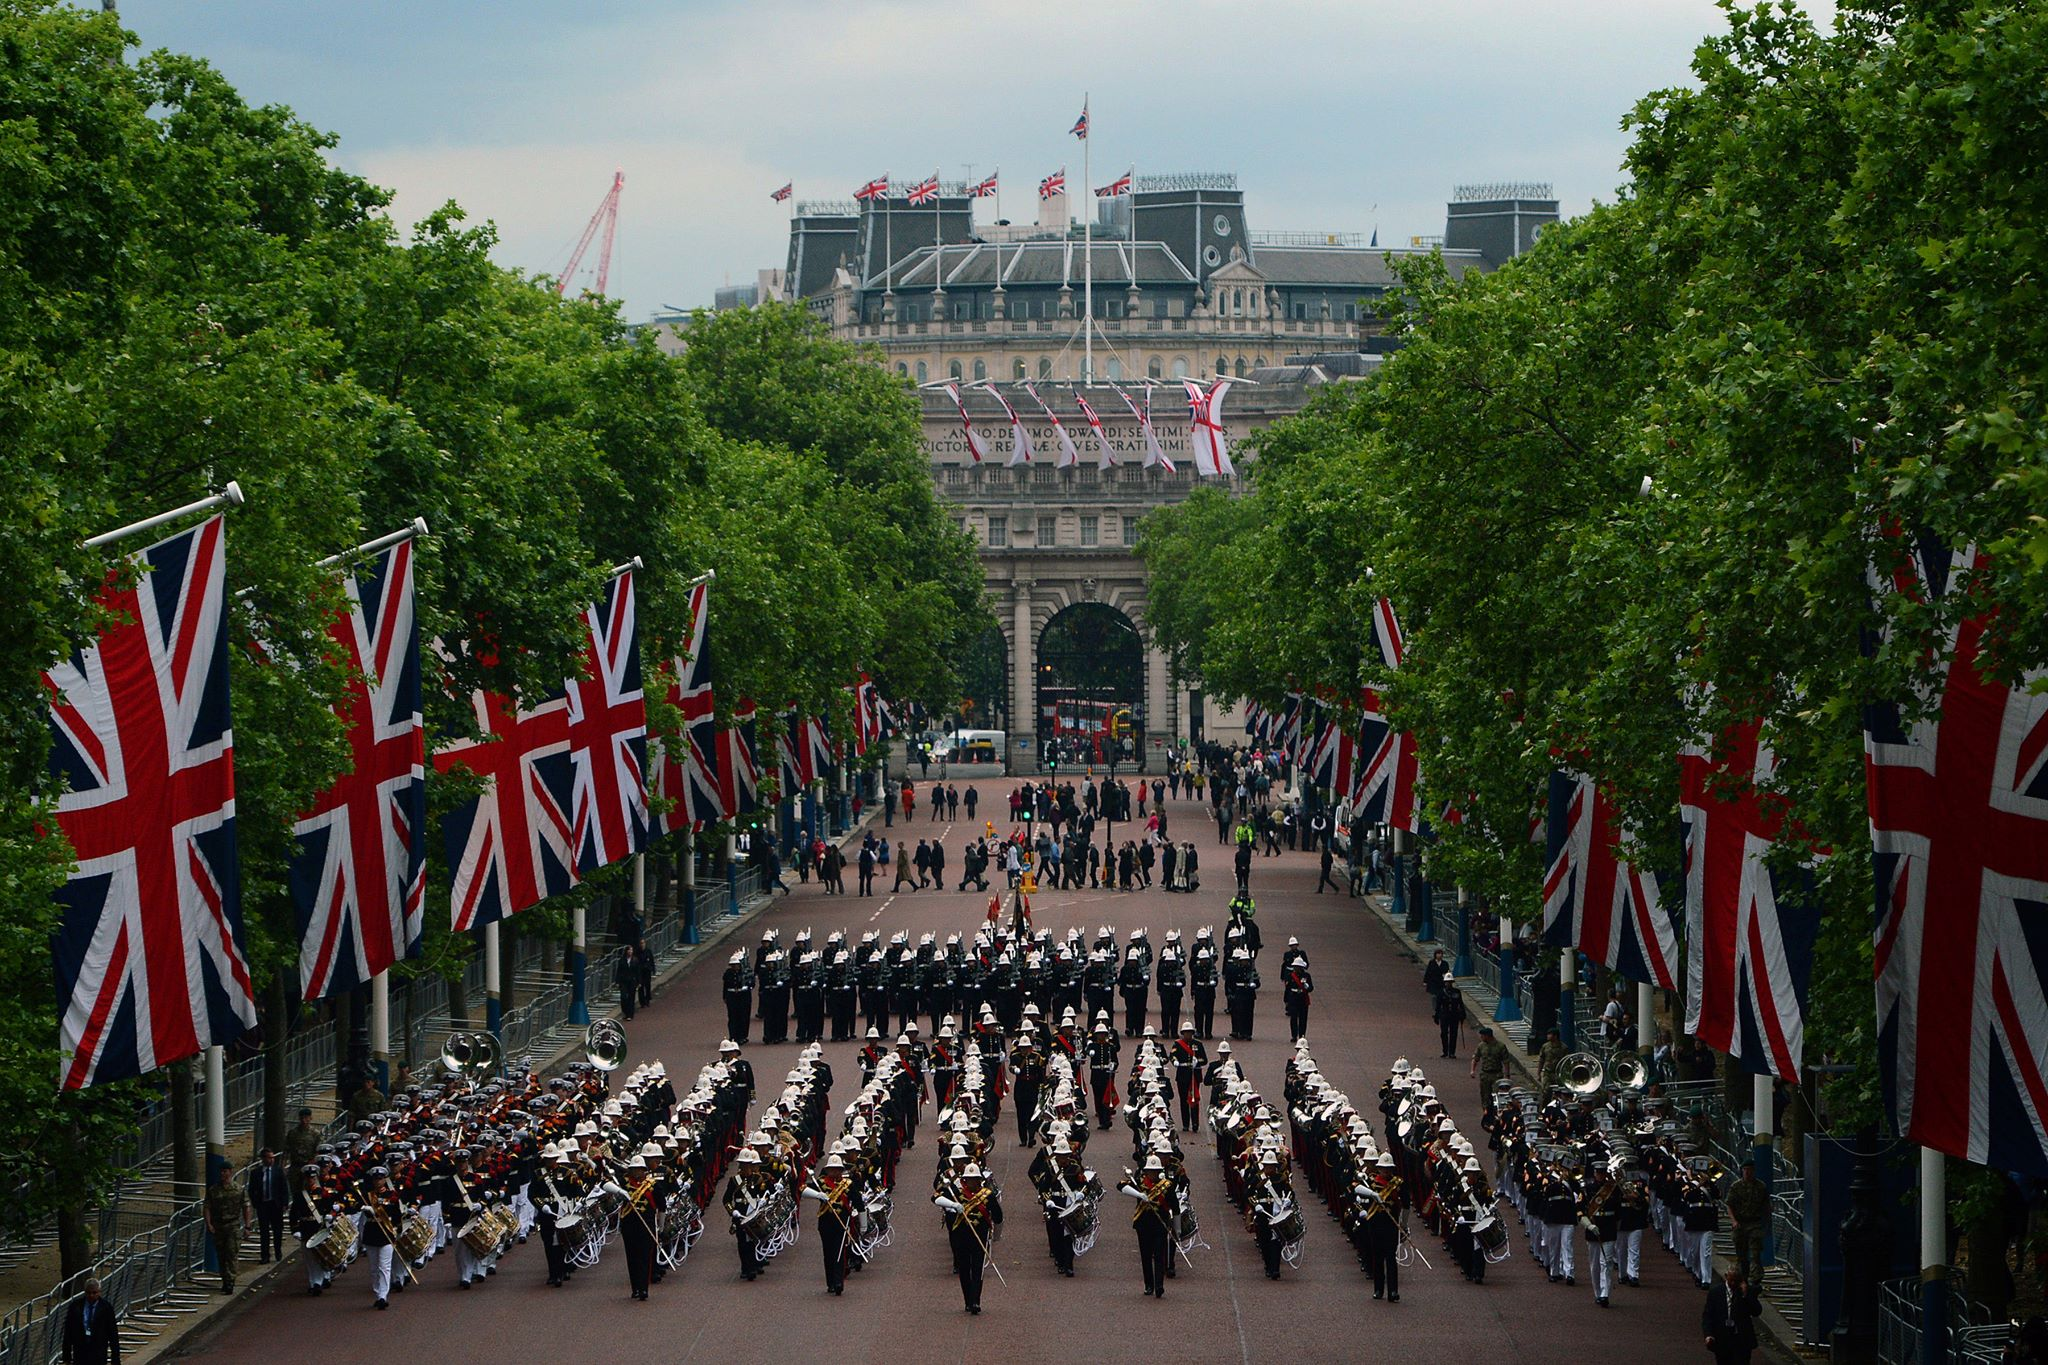 Uk s royal marines band at romania s national day parade in bucharest romania insider - Royal marines recruitment office ...